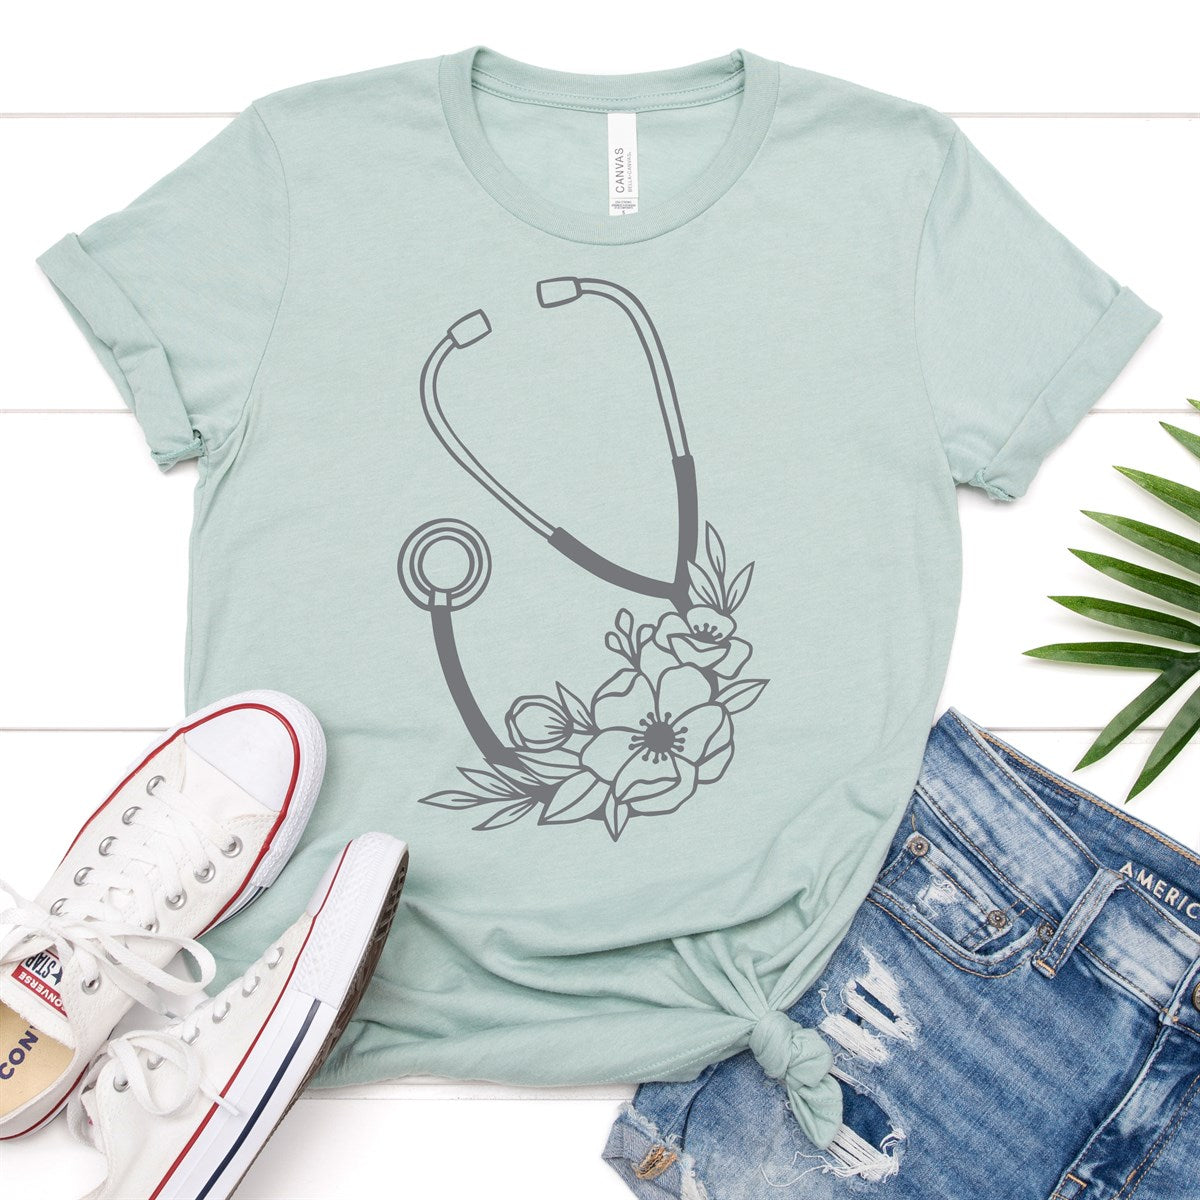 Stethoscope Tee - Limeberry Designs